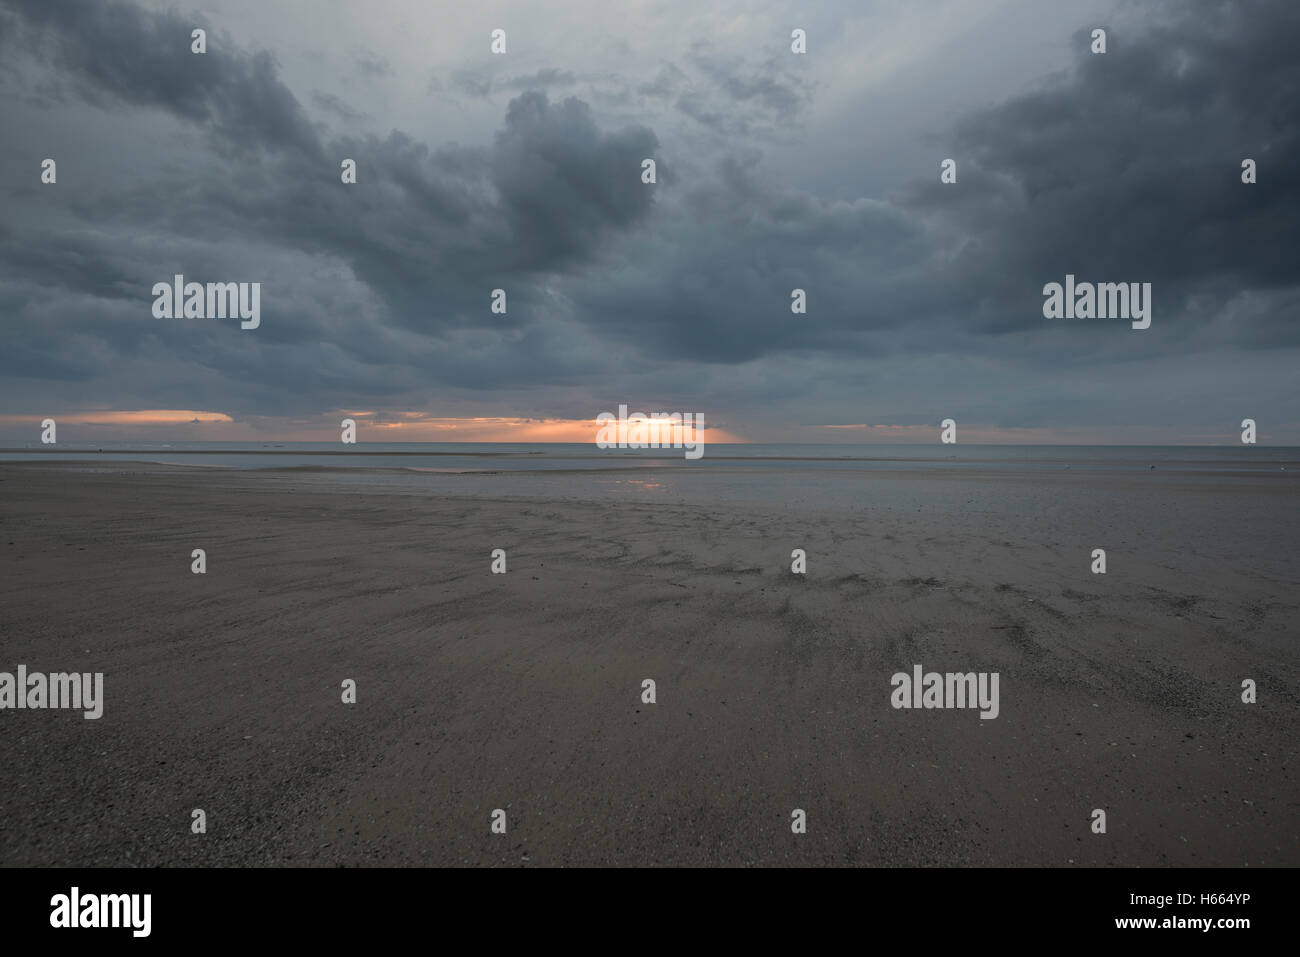 Dark, moody sunset in Blackpool, England during autumn while the famous Black Illuminations are lit up Stock Photo